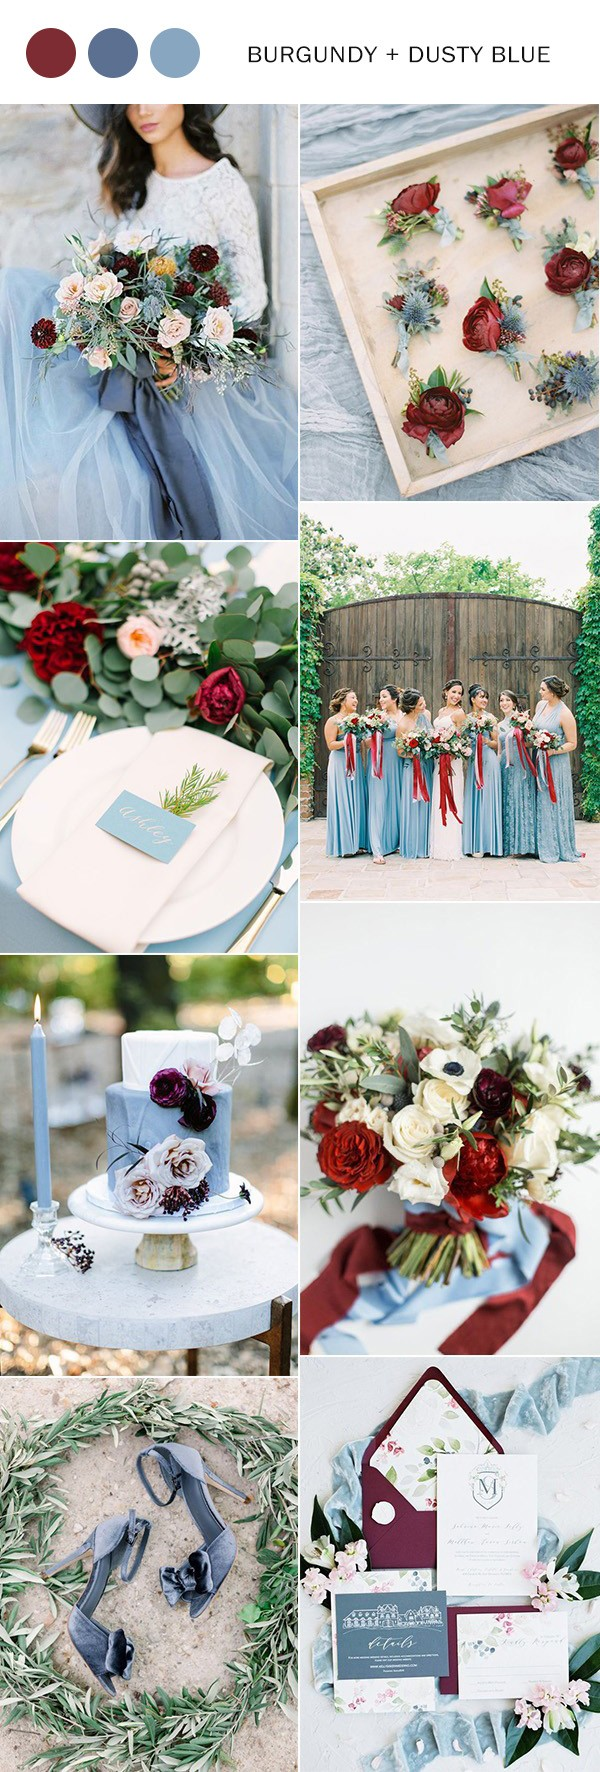 dusty blue and burgundy wedding color ideas